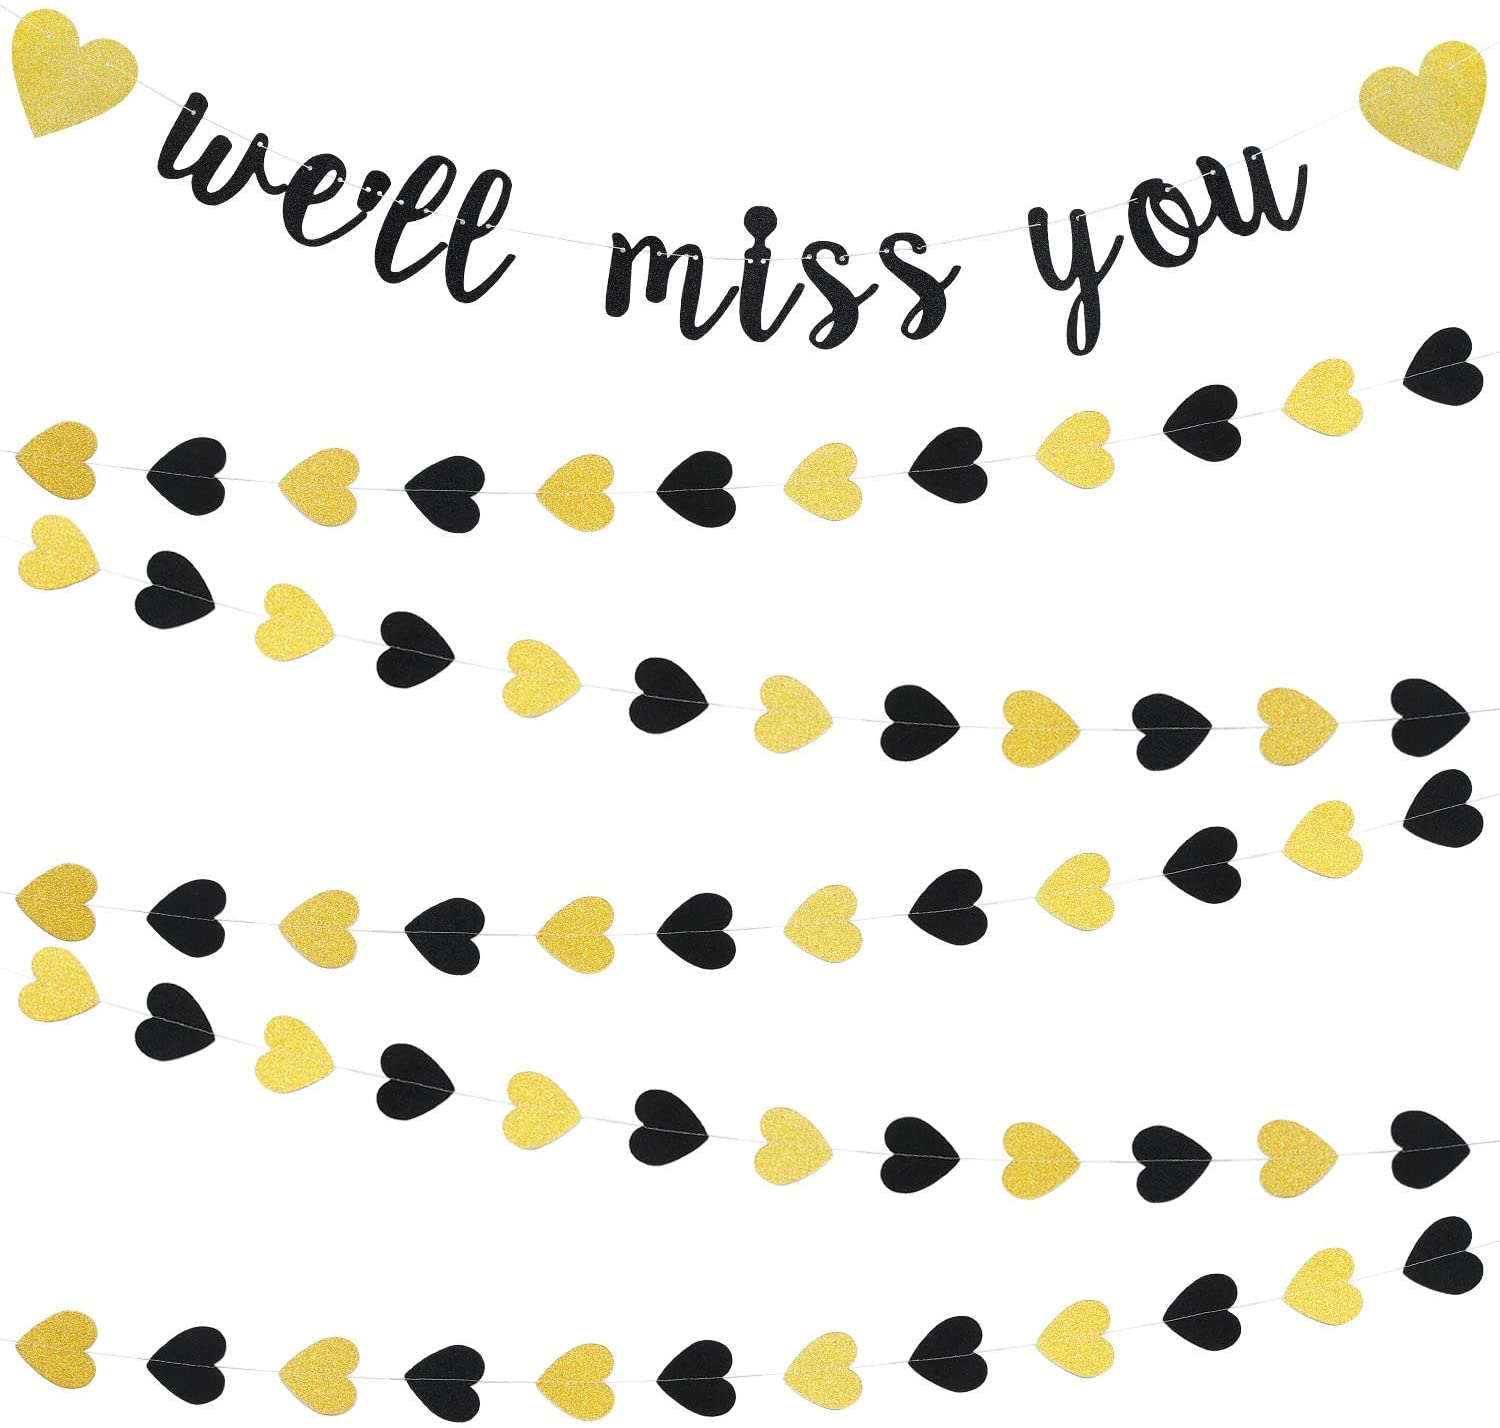 We'll Miss You Banner Decorations Glitter Gold Banners Farewell Banners for Retirement Graduation Going Away Office Work Party